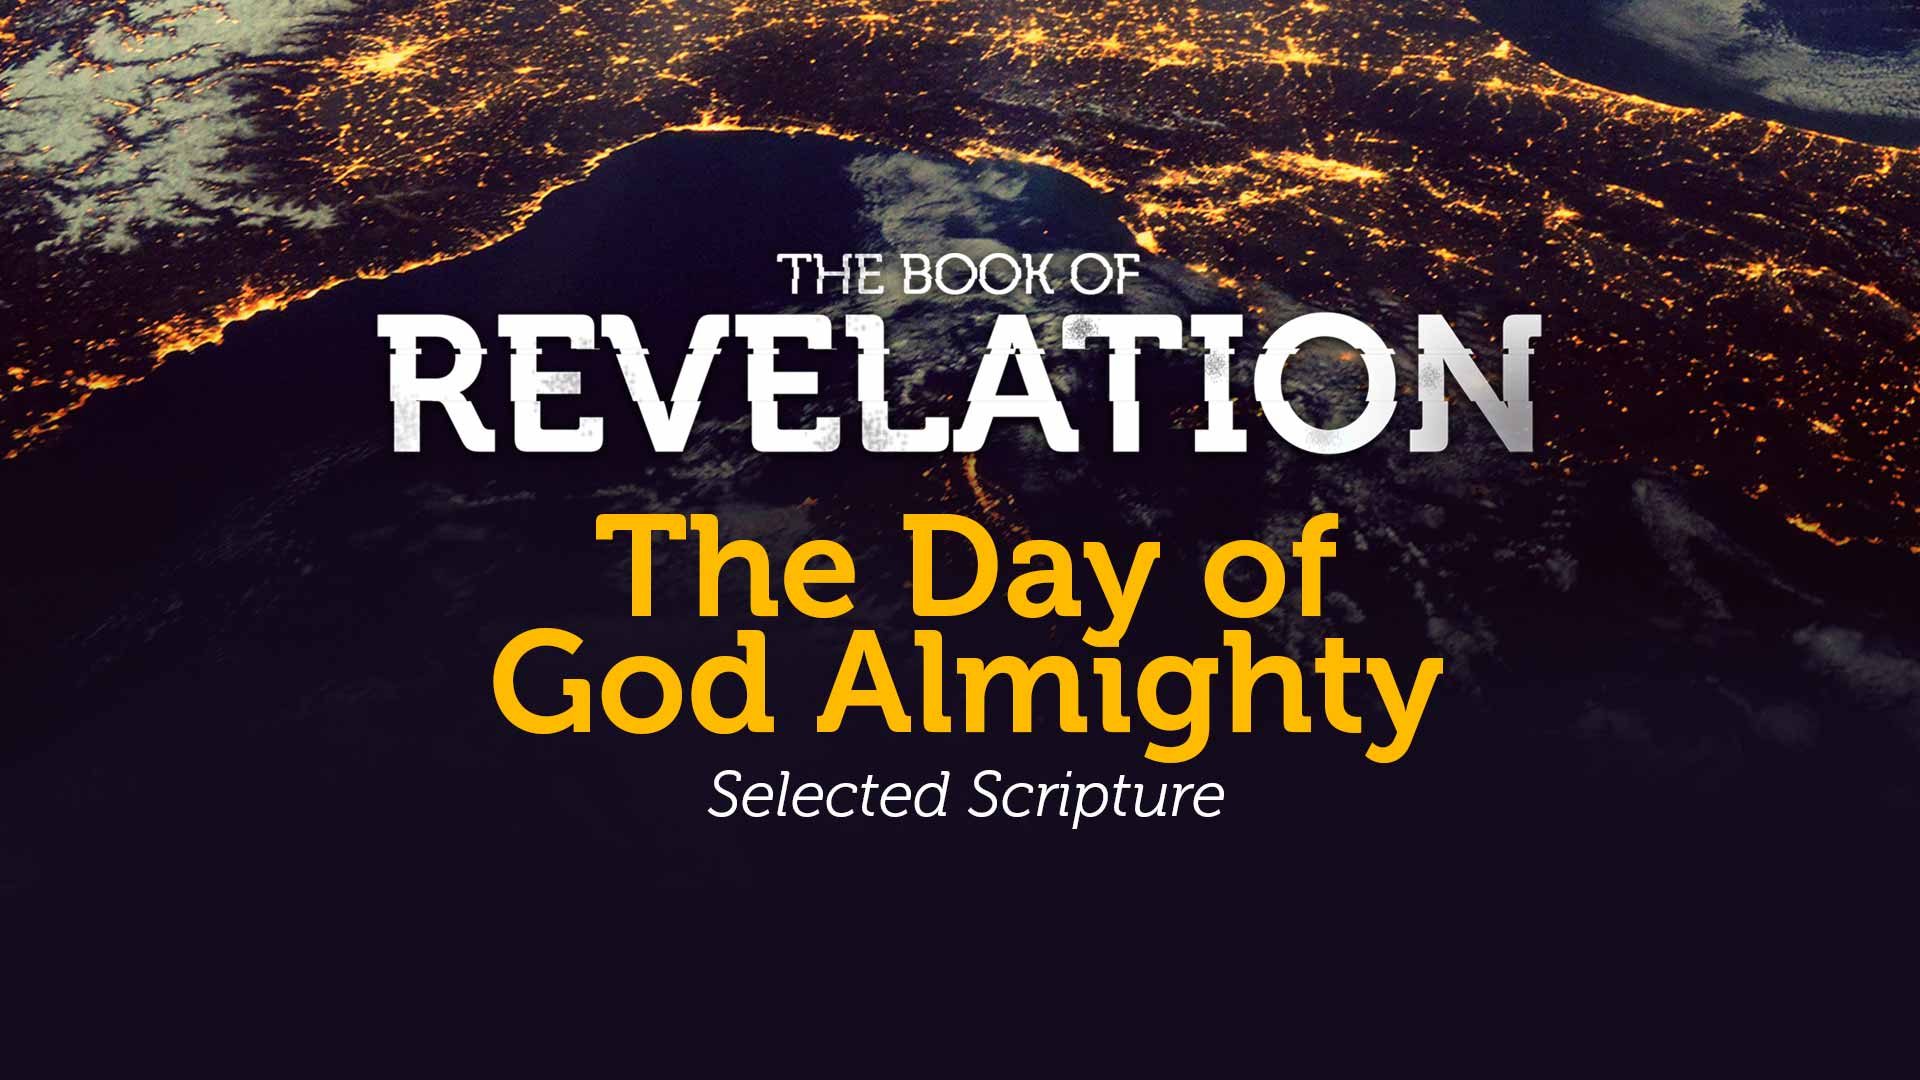 The Great Day of God Almighty